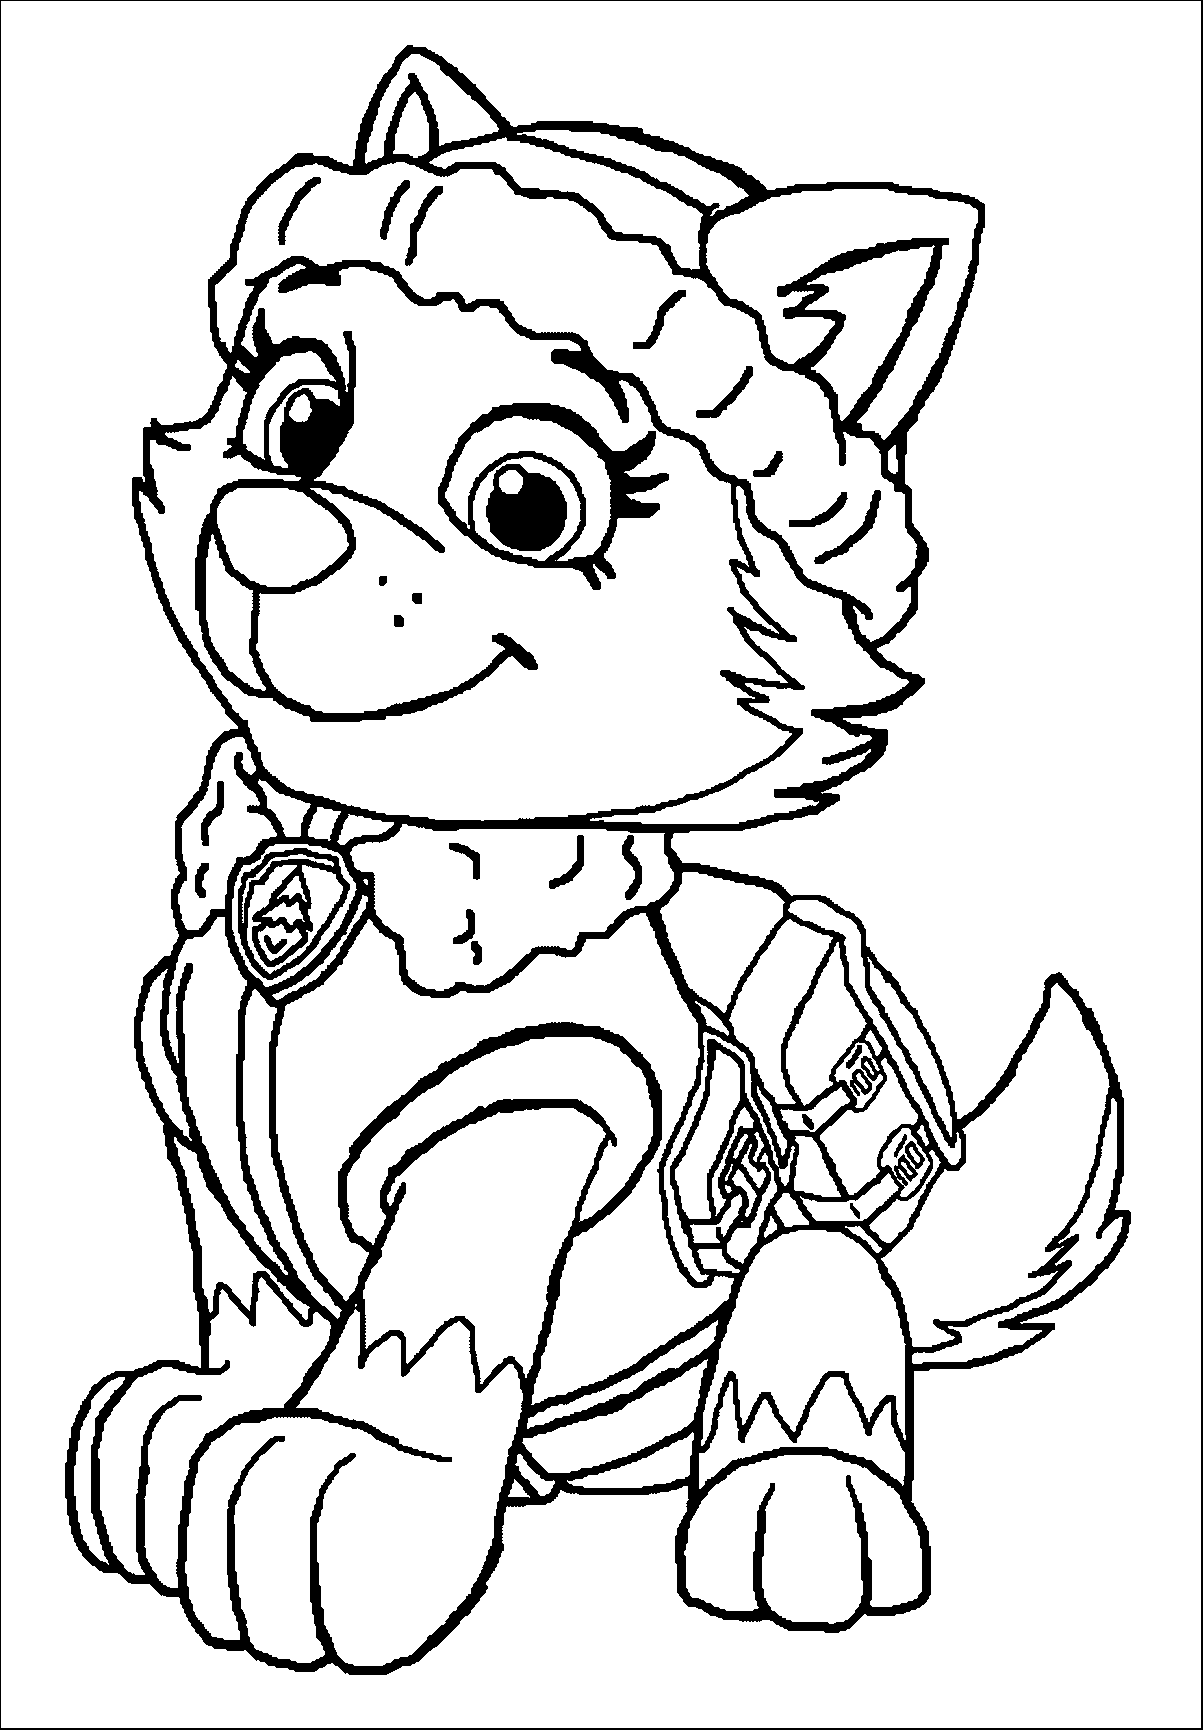 paw patrol coloring pages free paw patrol coloring pages happiness is homemade paw patrol pages coloring